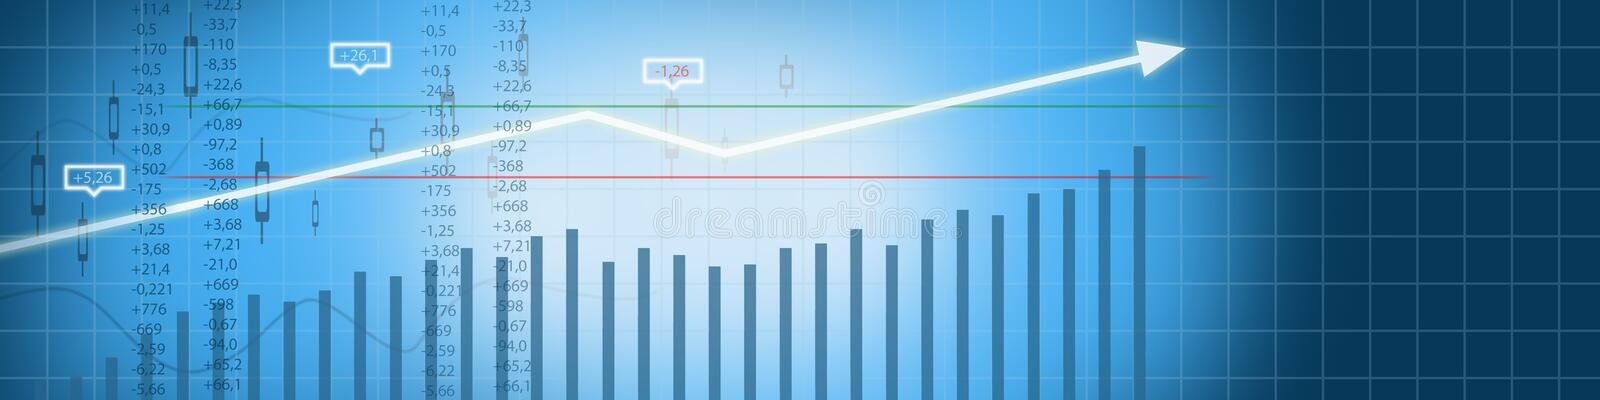 Business stock market background royalty free stock images